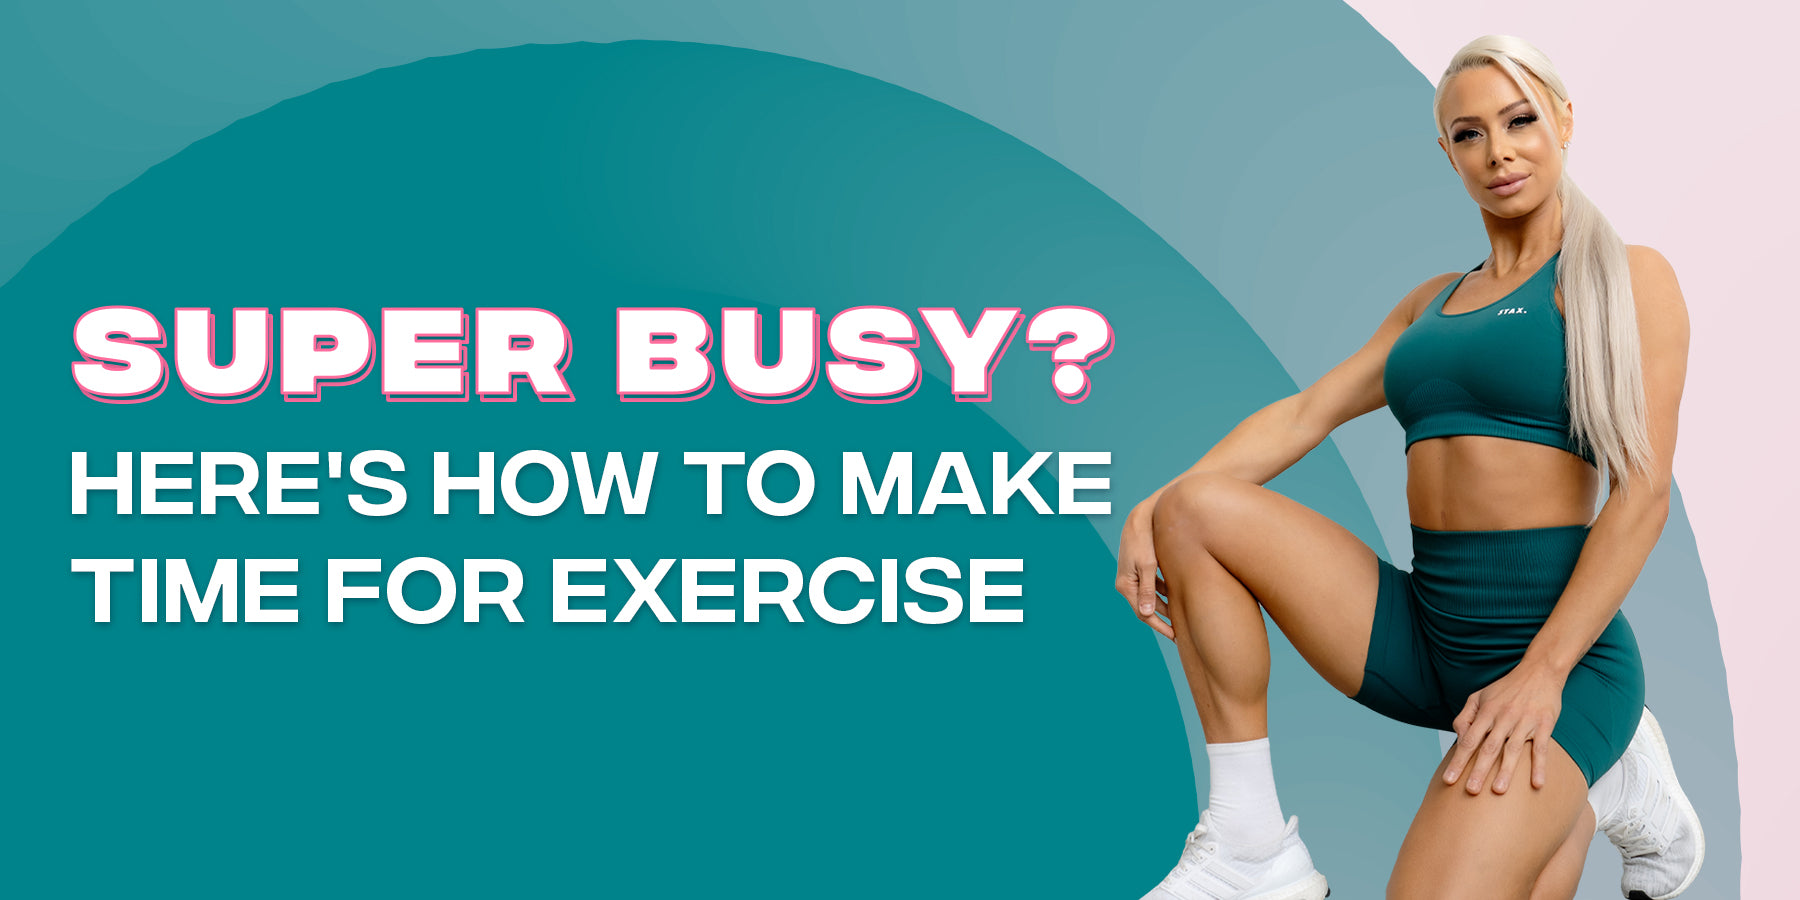 Super Busy? Here's How To Make Time for Exercise